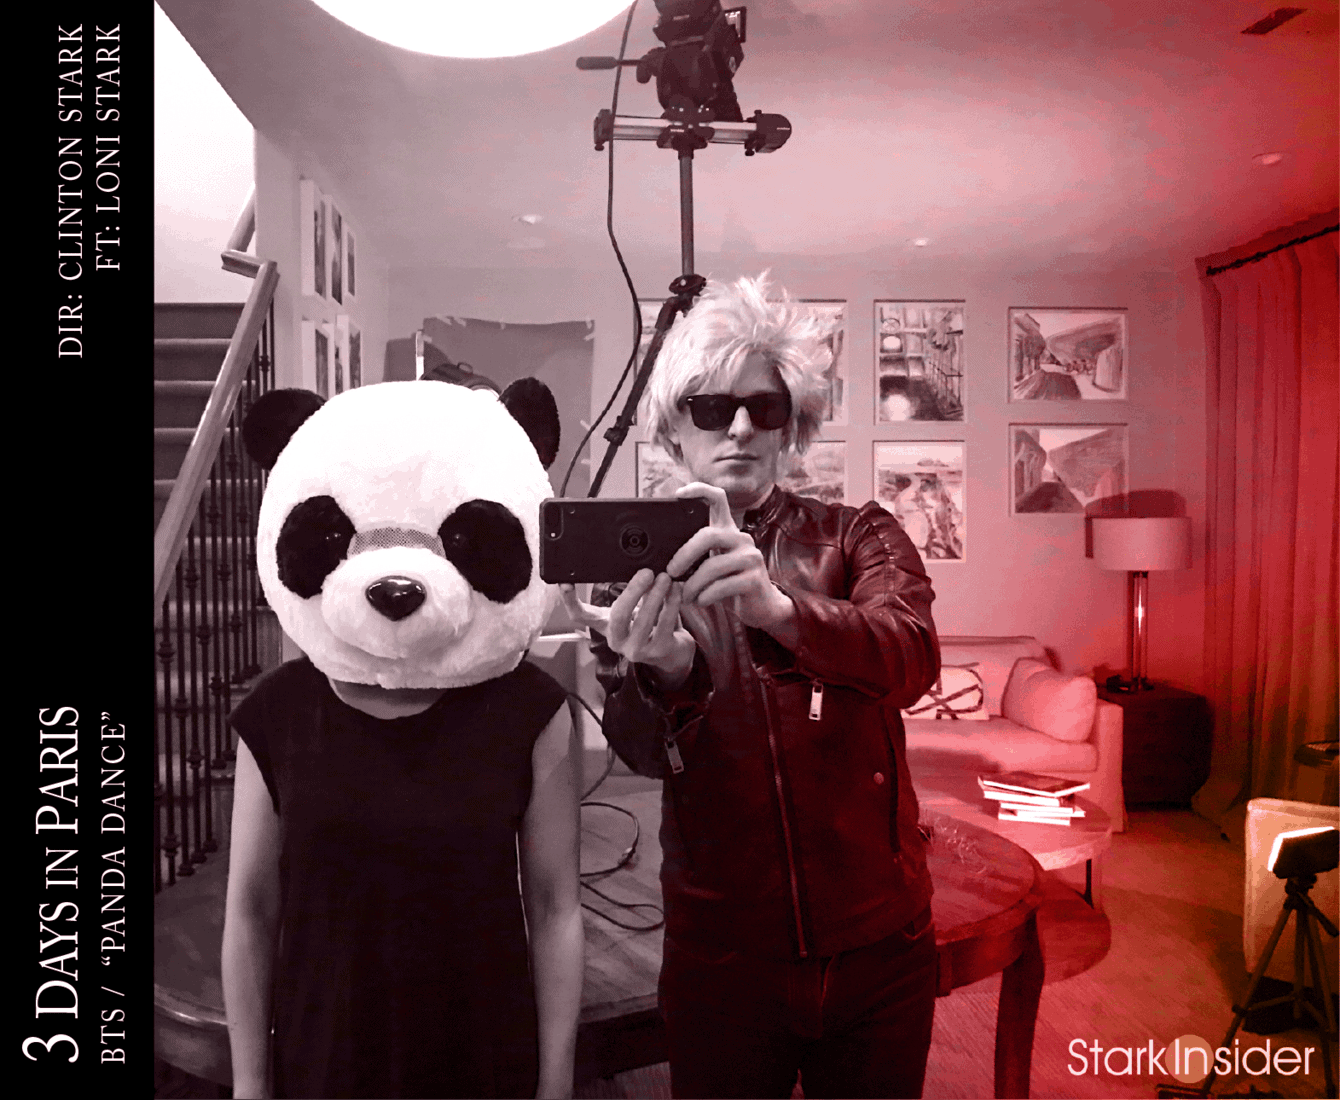 3 Days in Paris BTS Panda Dance: Loni and Clinton Stark